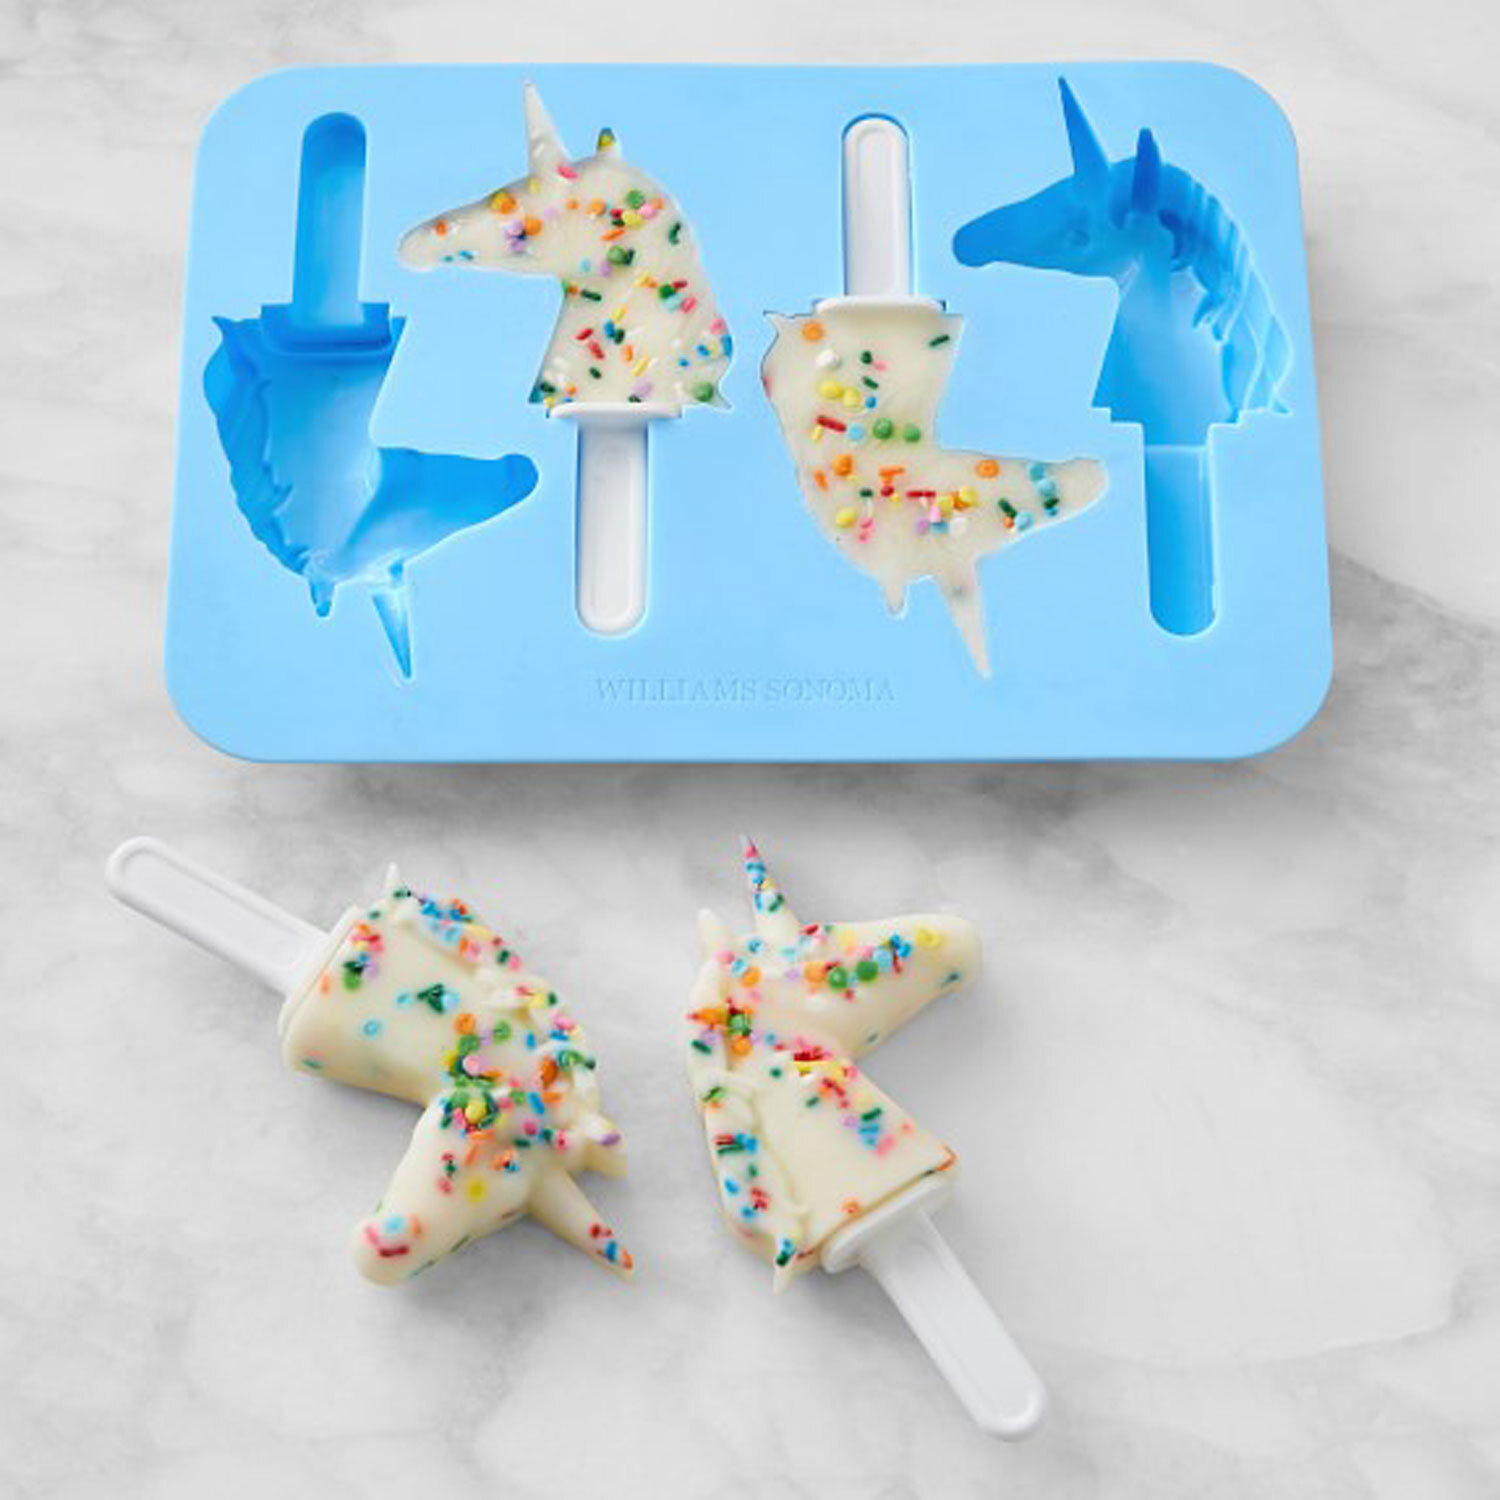 unicorn-shaped-popsicle-mold